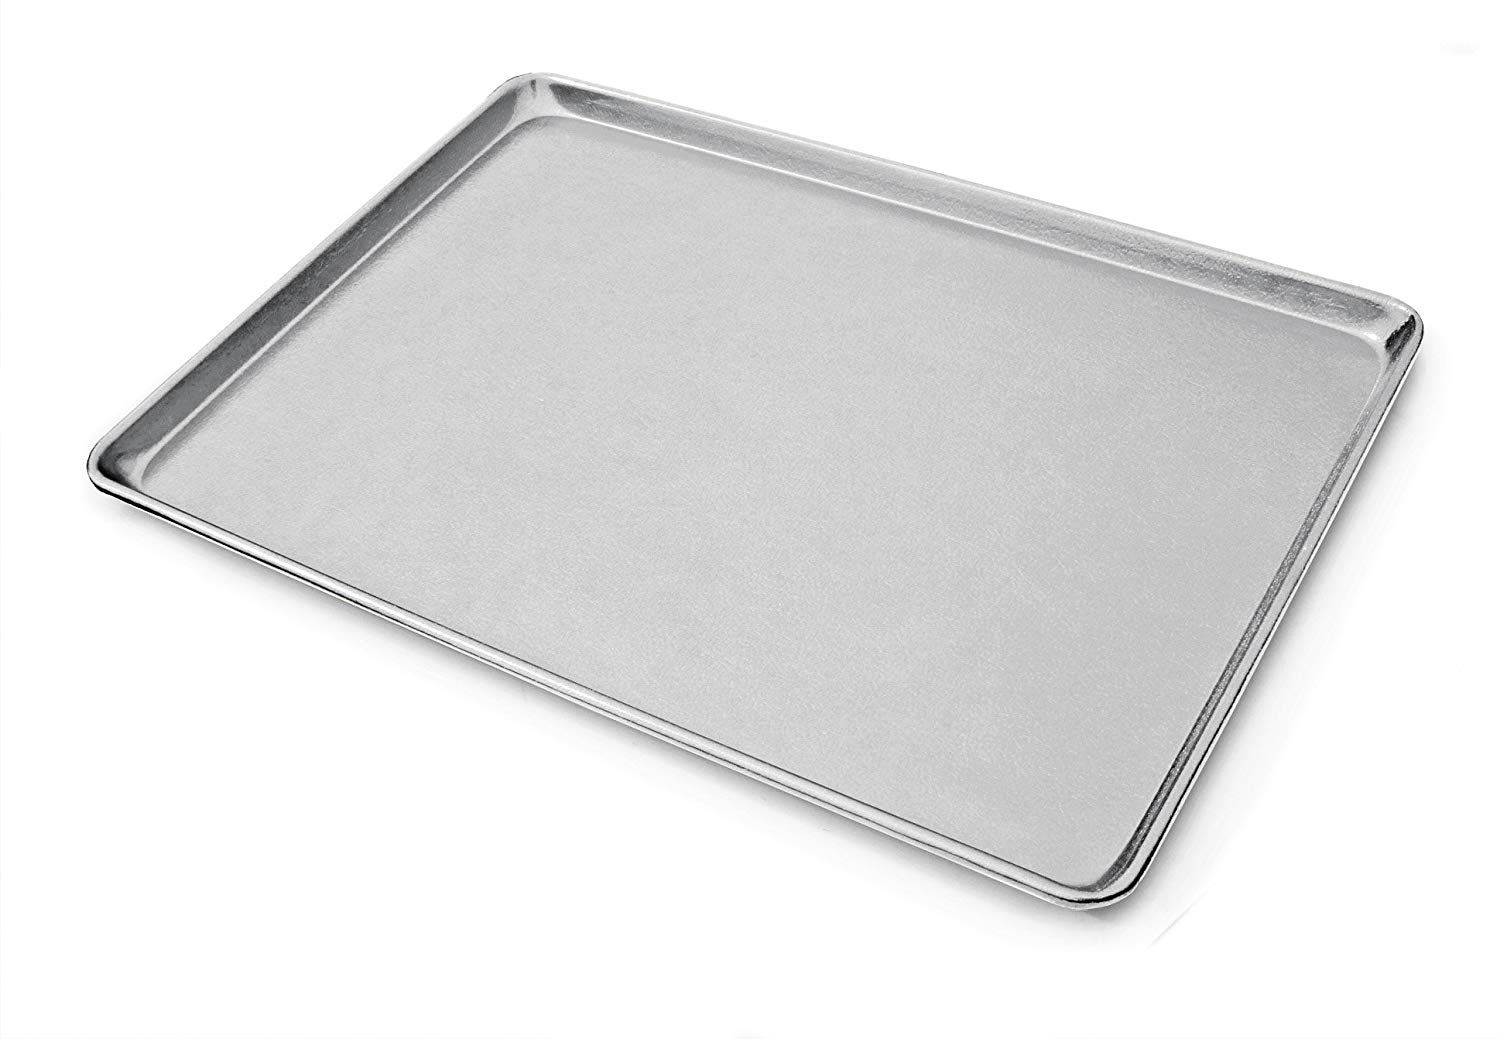 New Star Foodservice 37319 Textured Commercial Sheet Pan Display Tray Silver Anodized 18 X 26 Inch Wa With Images Nonstick Baking Pans Sheet Pan Baking Cookie Sheets